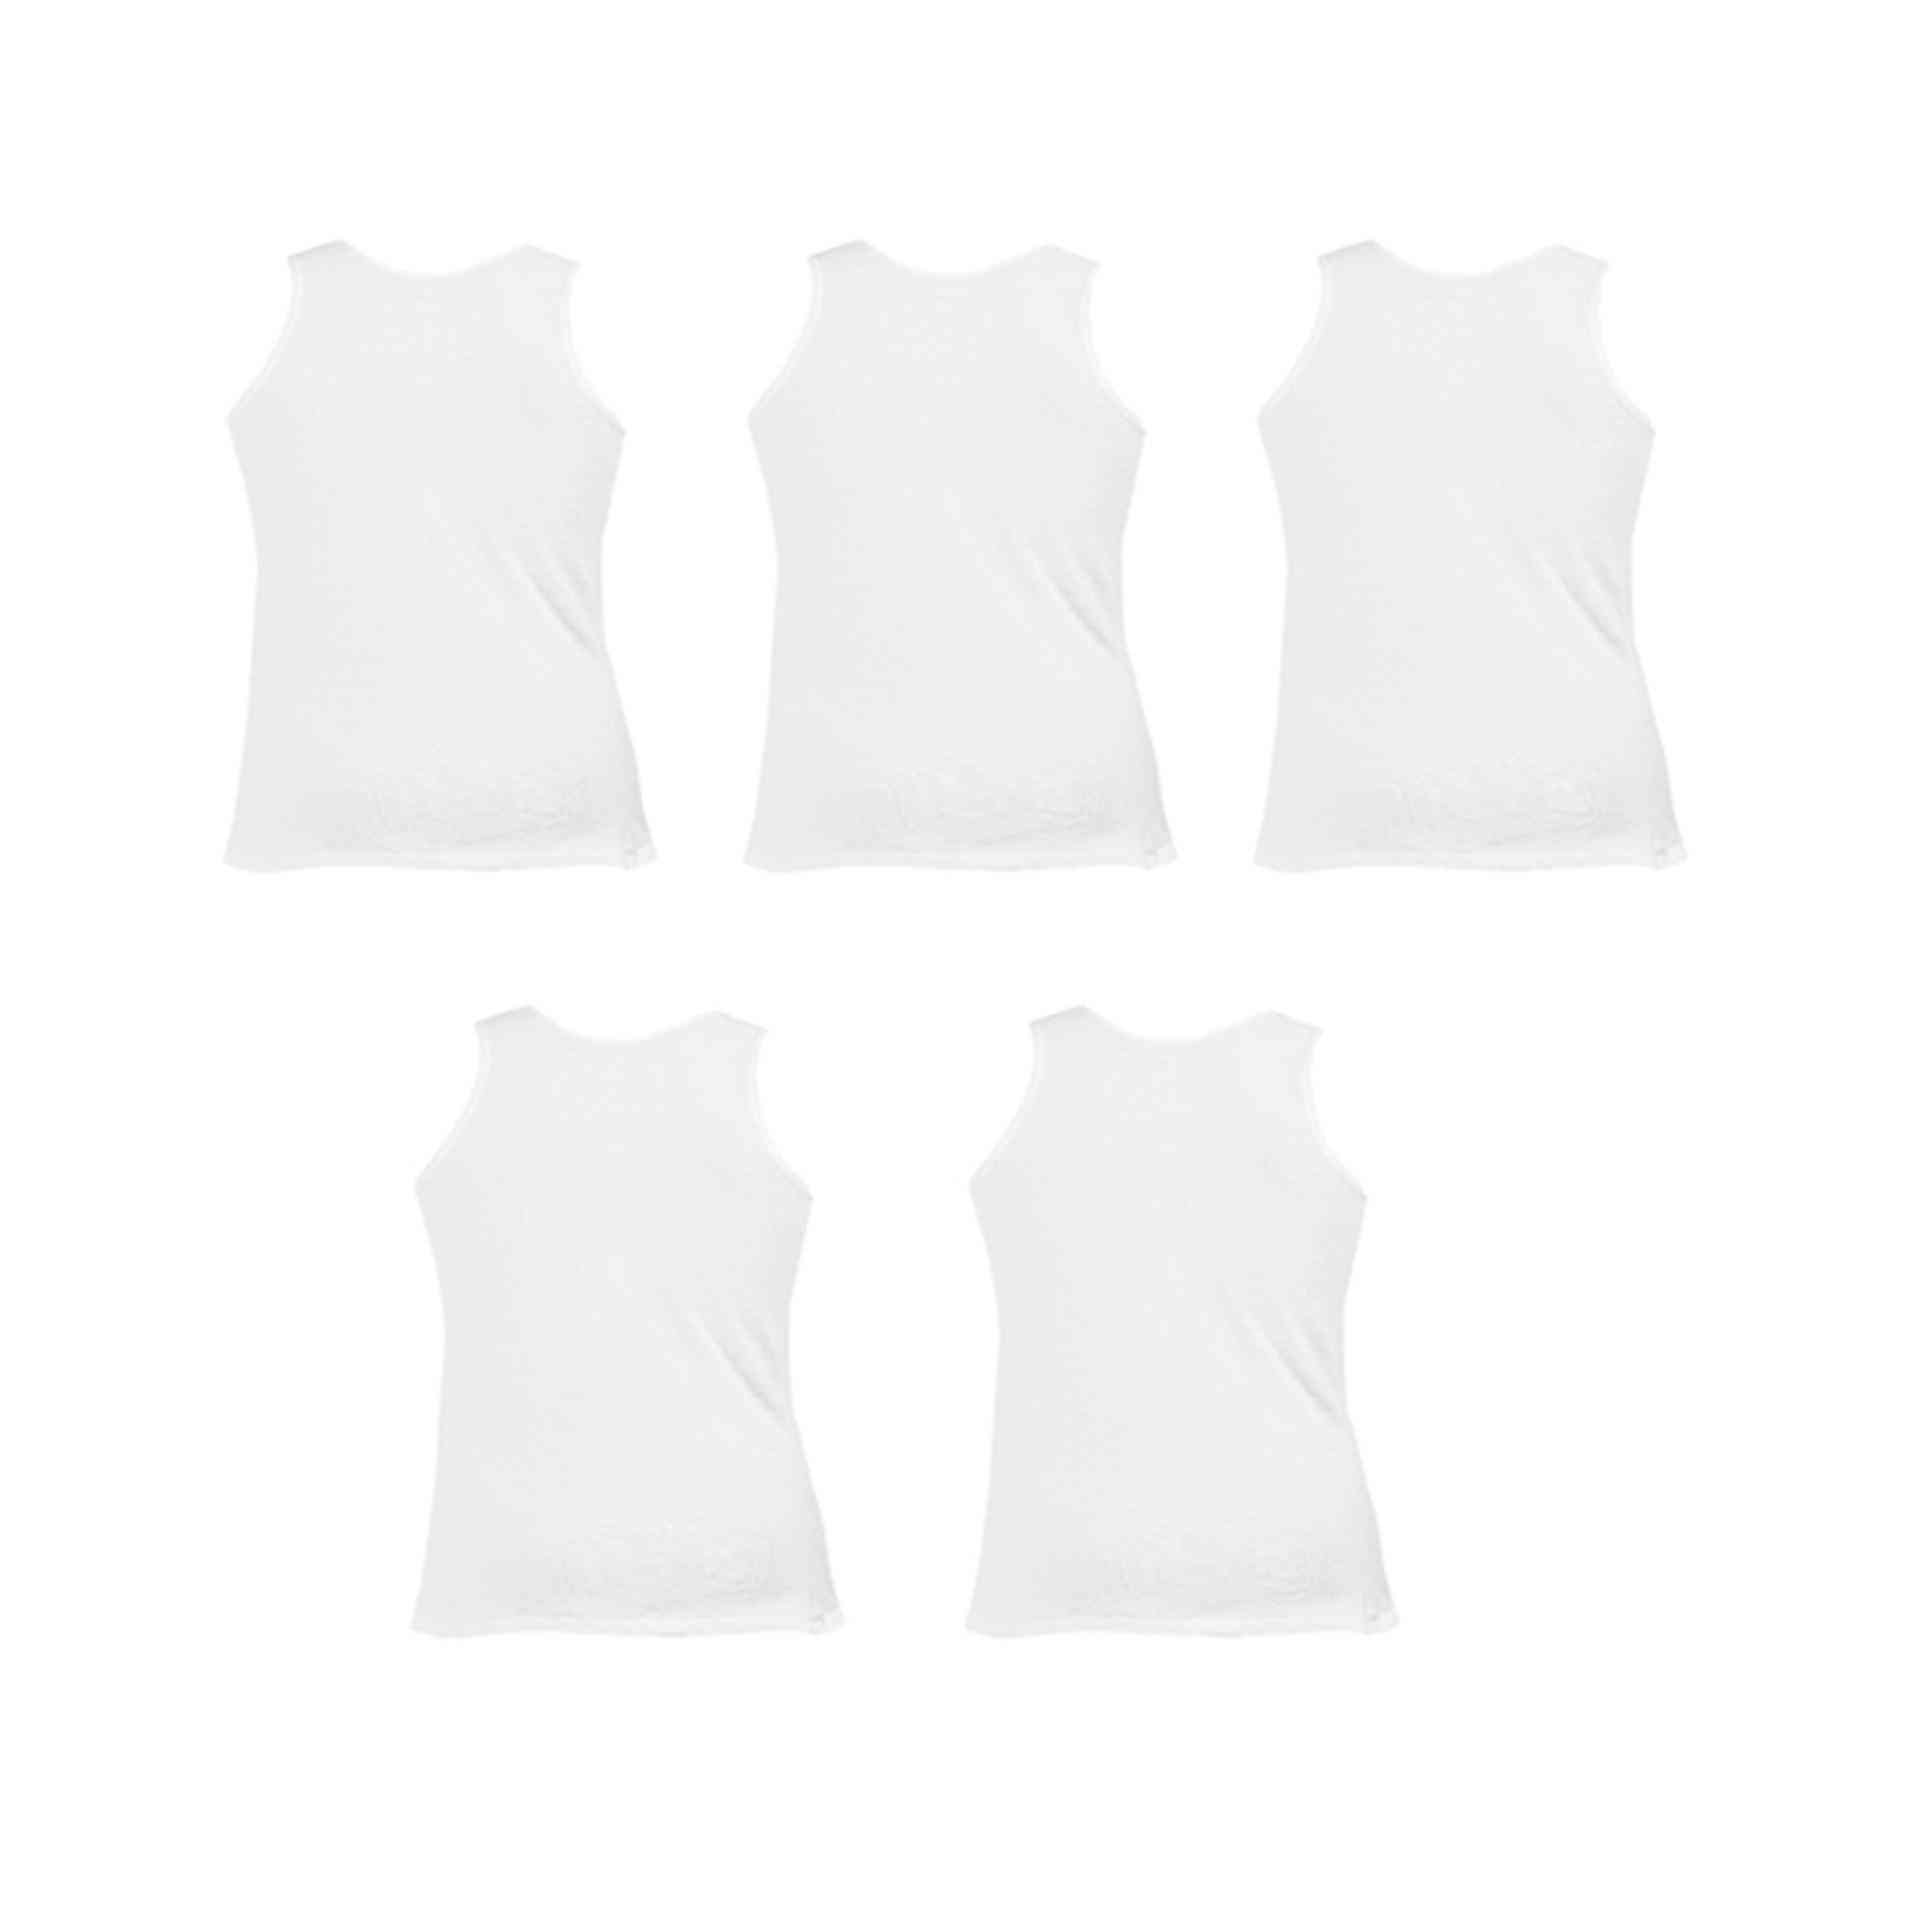 Daisy Summer Pack of 5 Cotton Polyester Vest for Men (80% Cotton 20% Polyester) - White